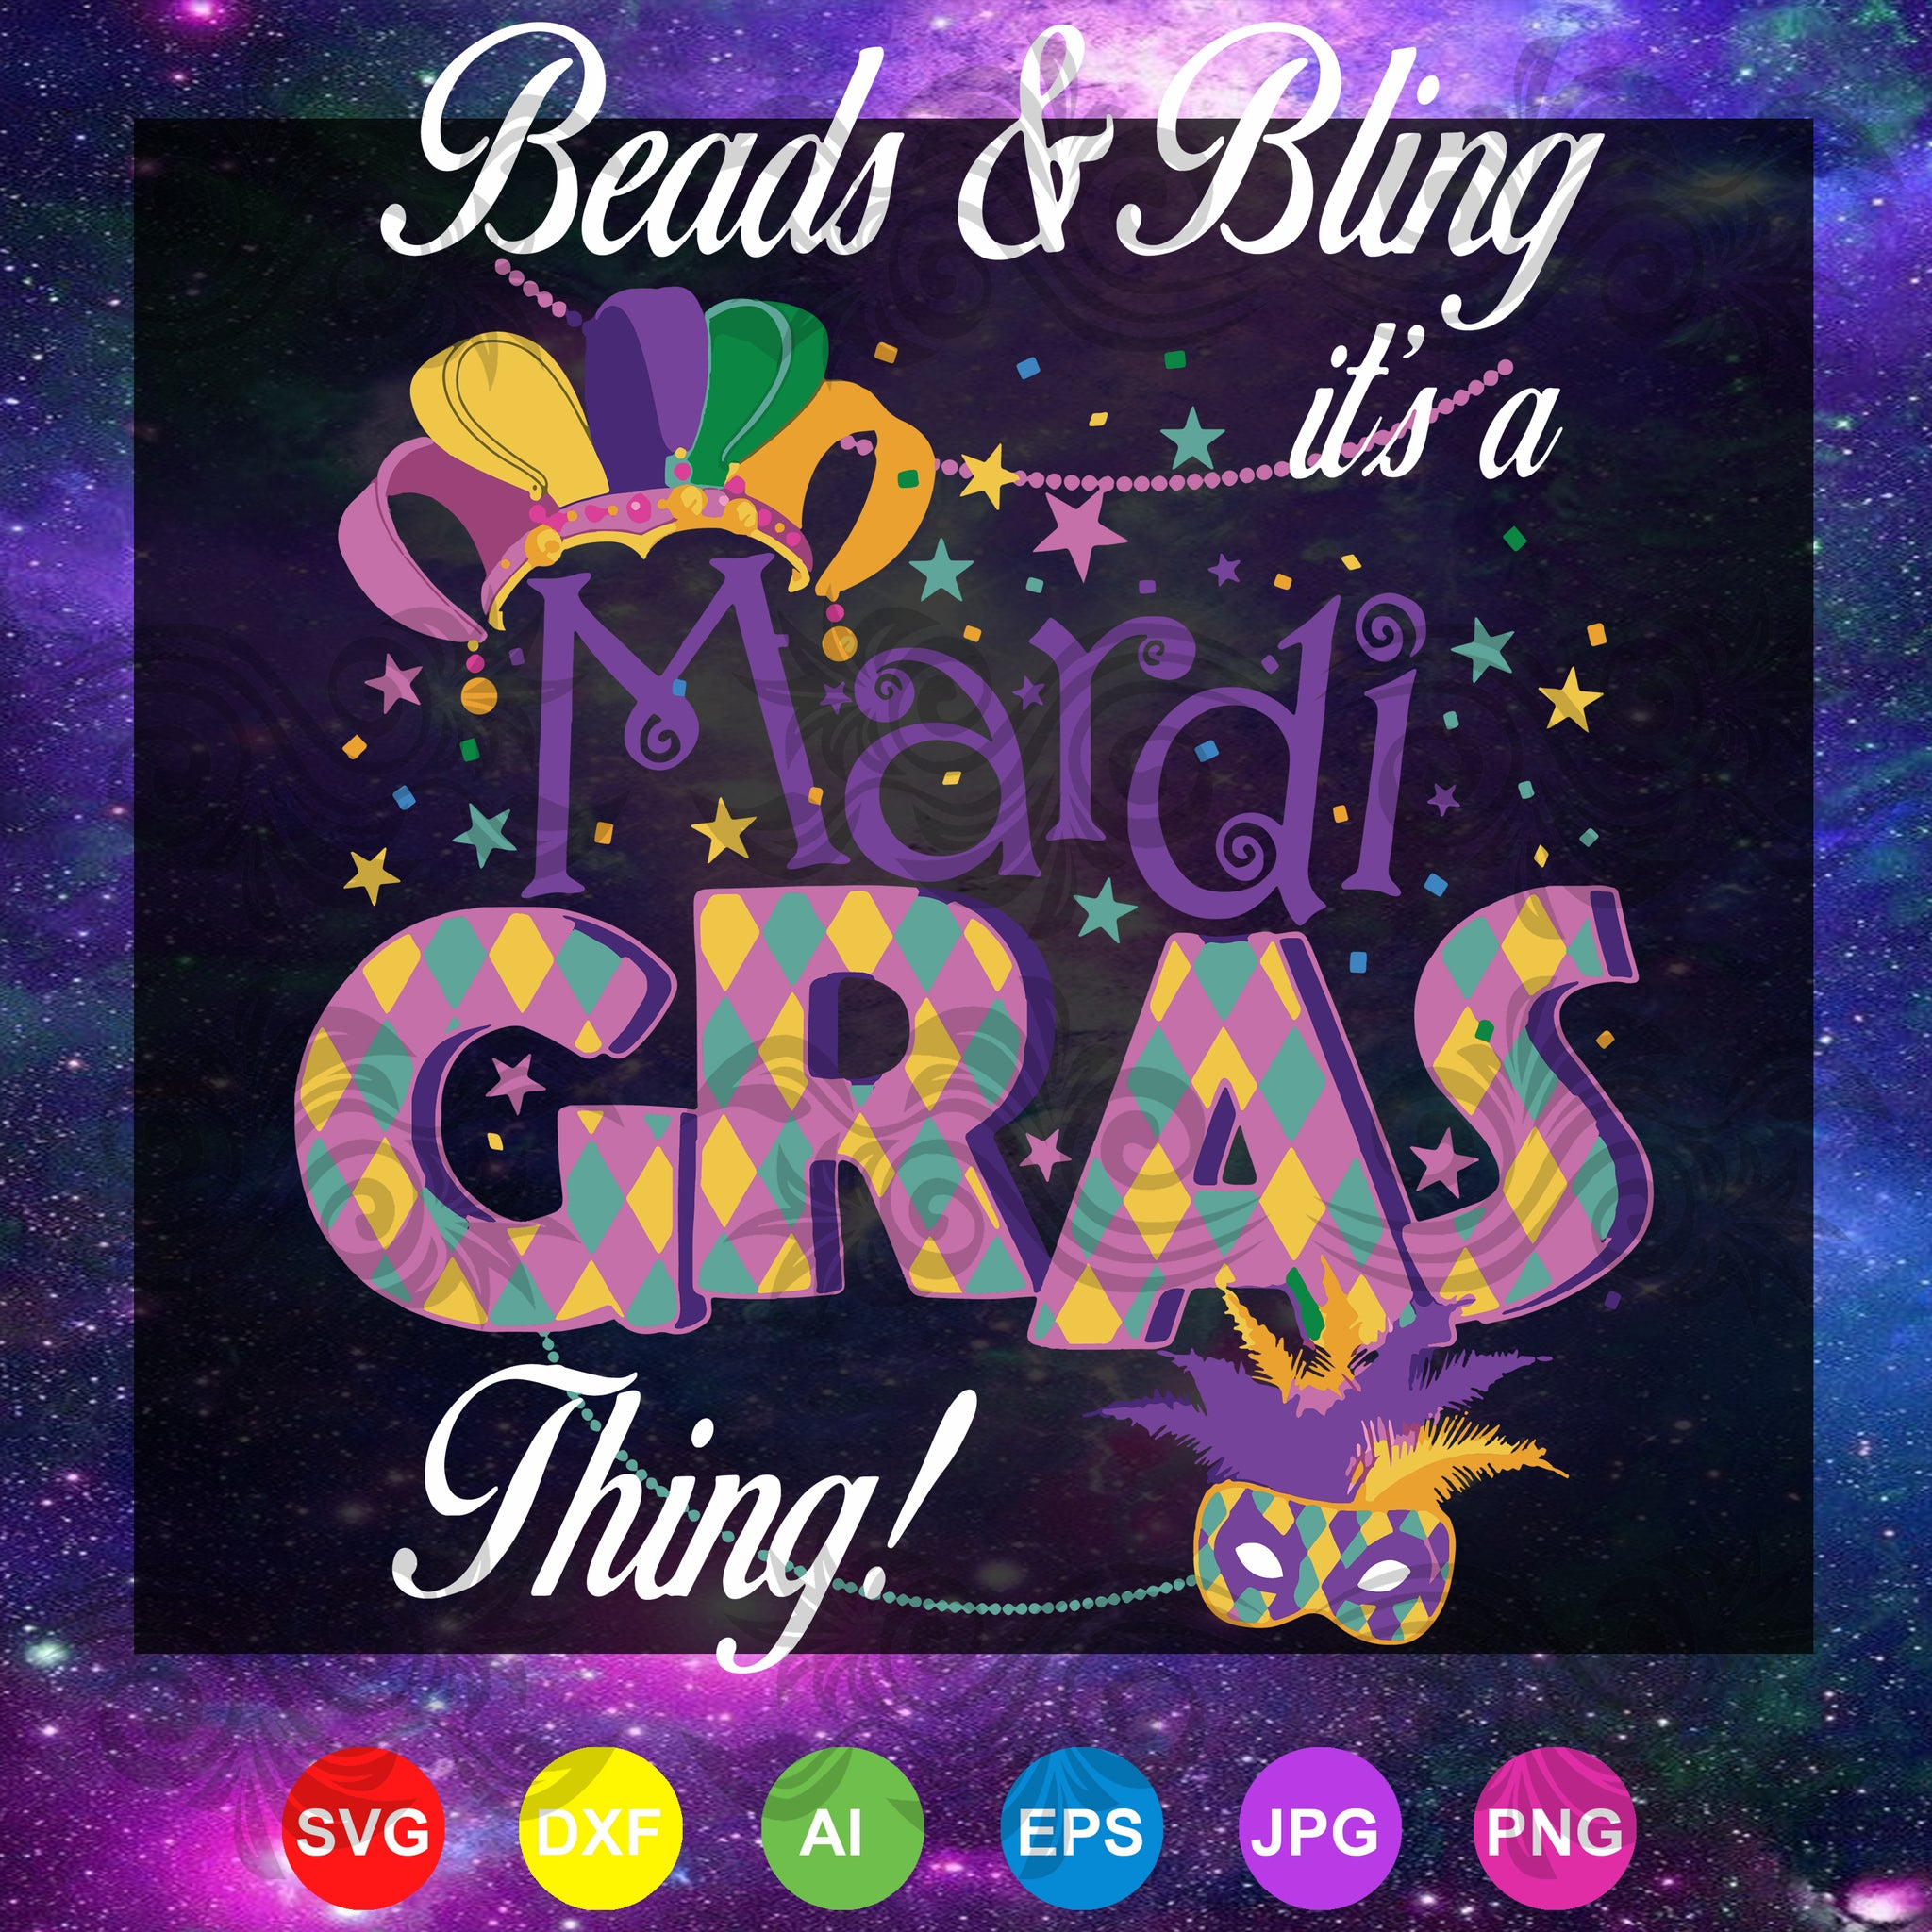 Beads and bling it's a mardi gras thing, bead and bling svg, mardi gras SVG, DXF, EPS, PNG Instant Download